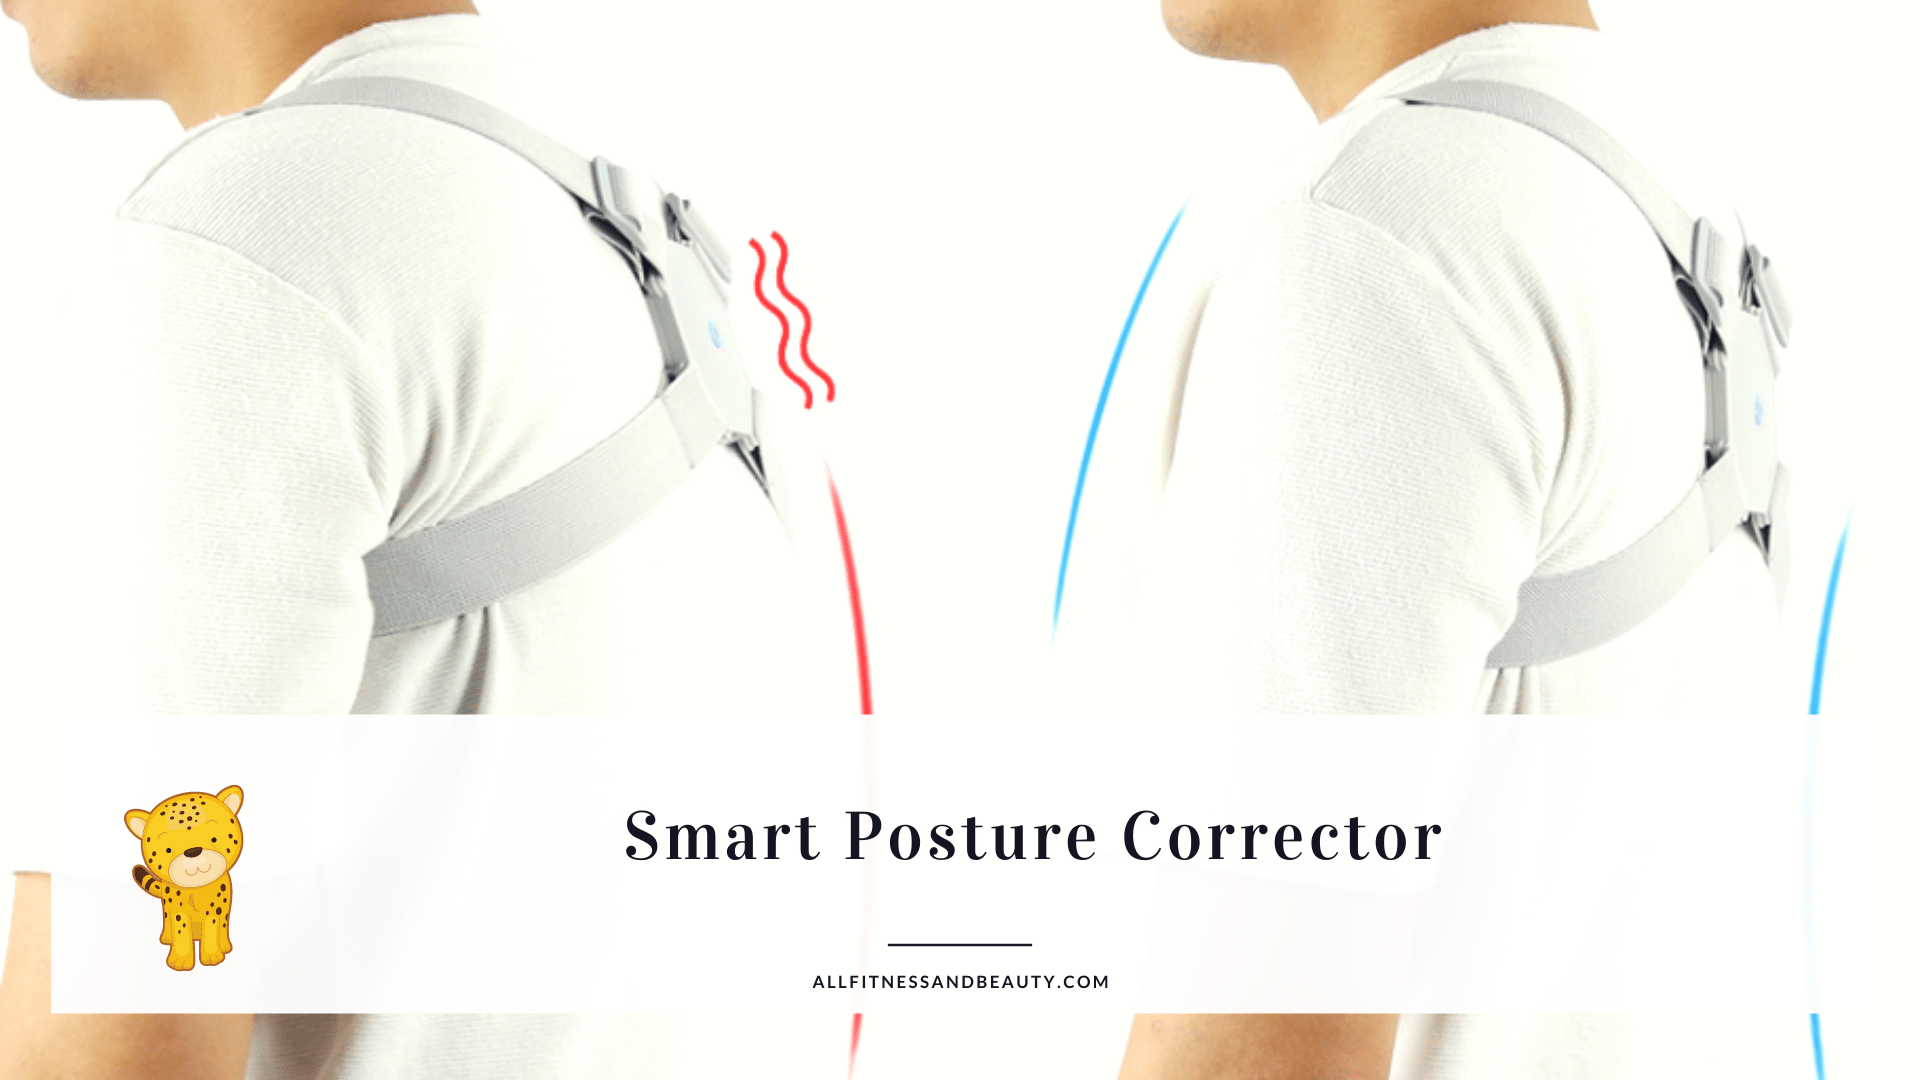 smart posture corrector to correct hunched over posture